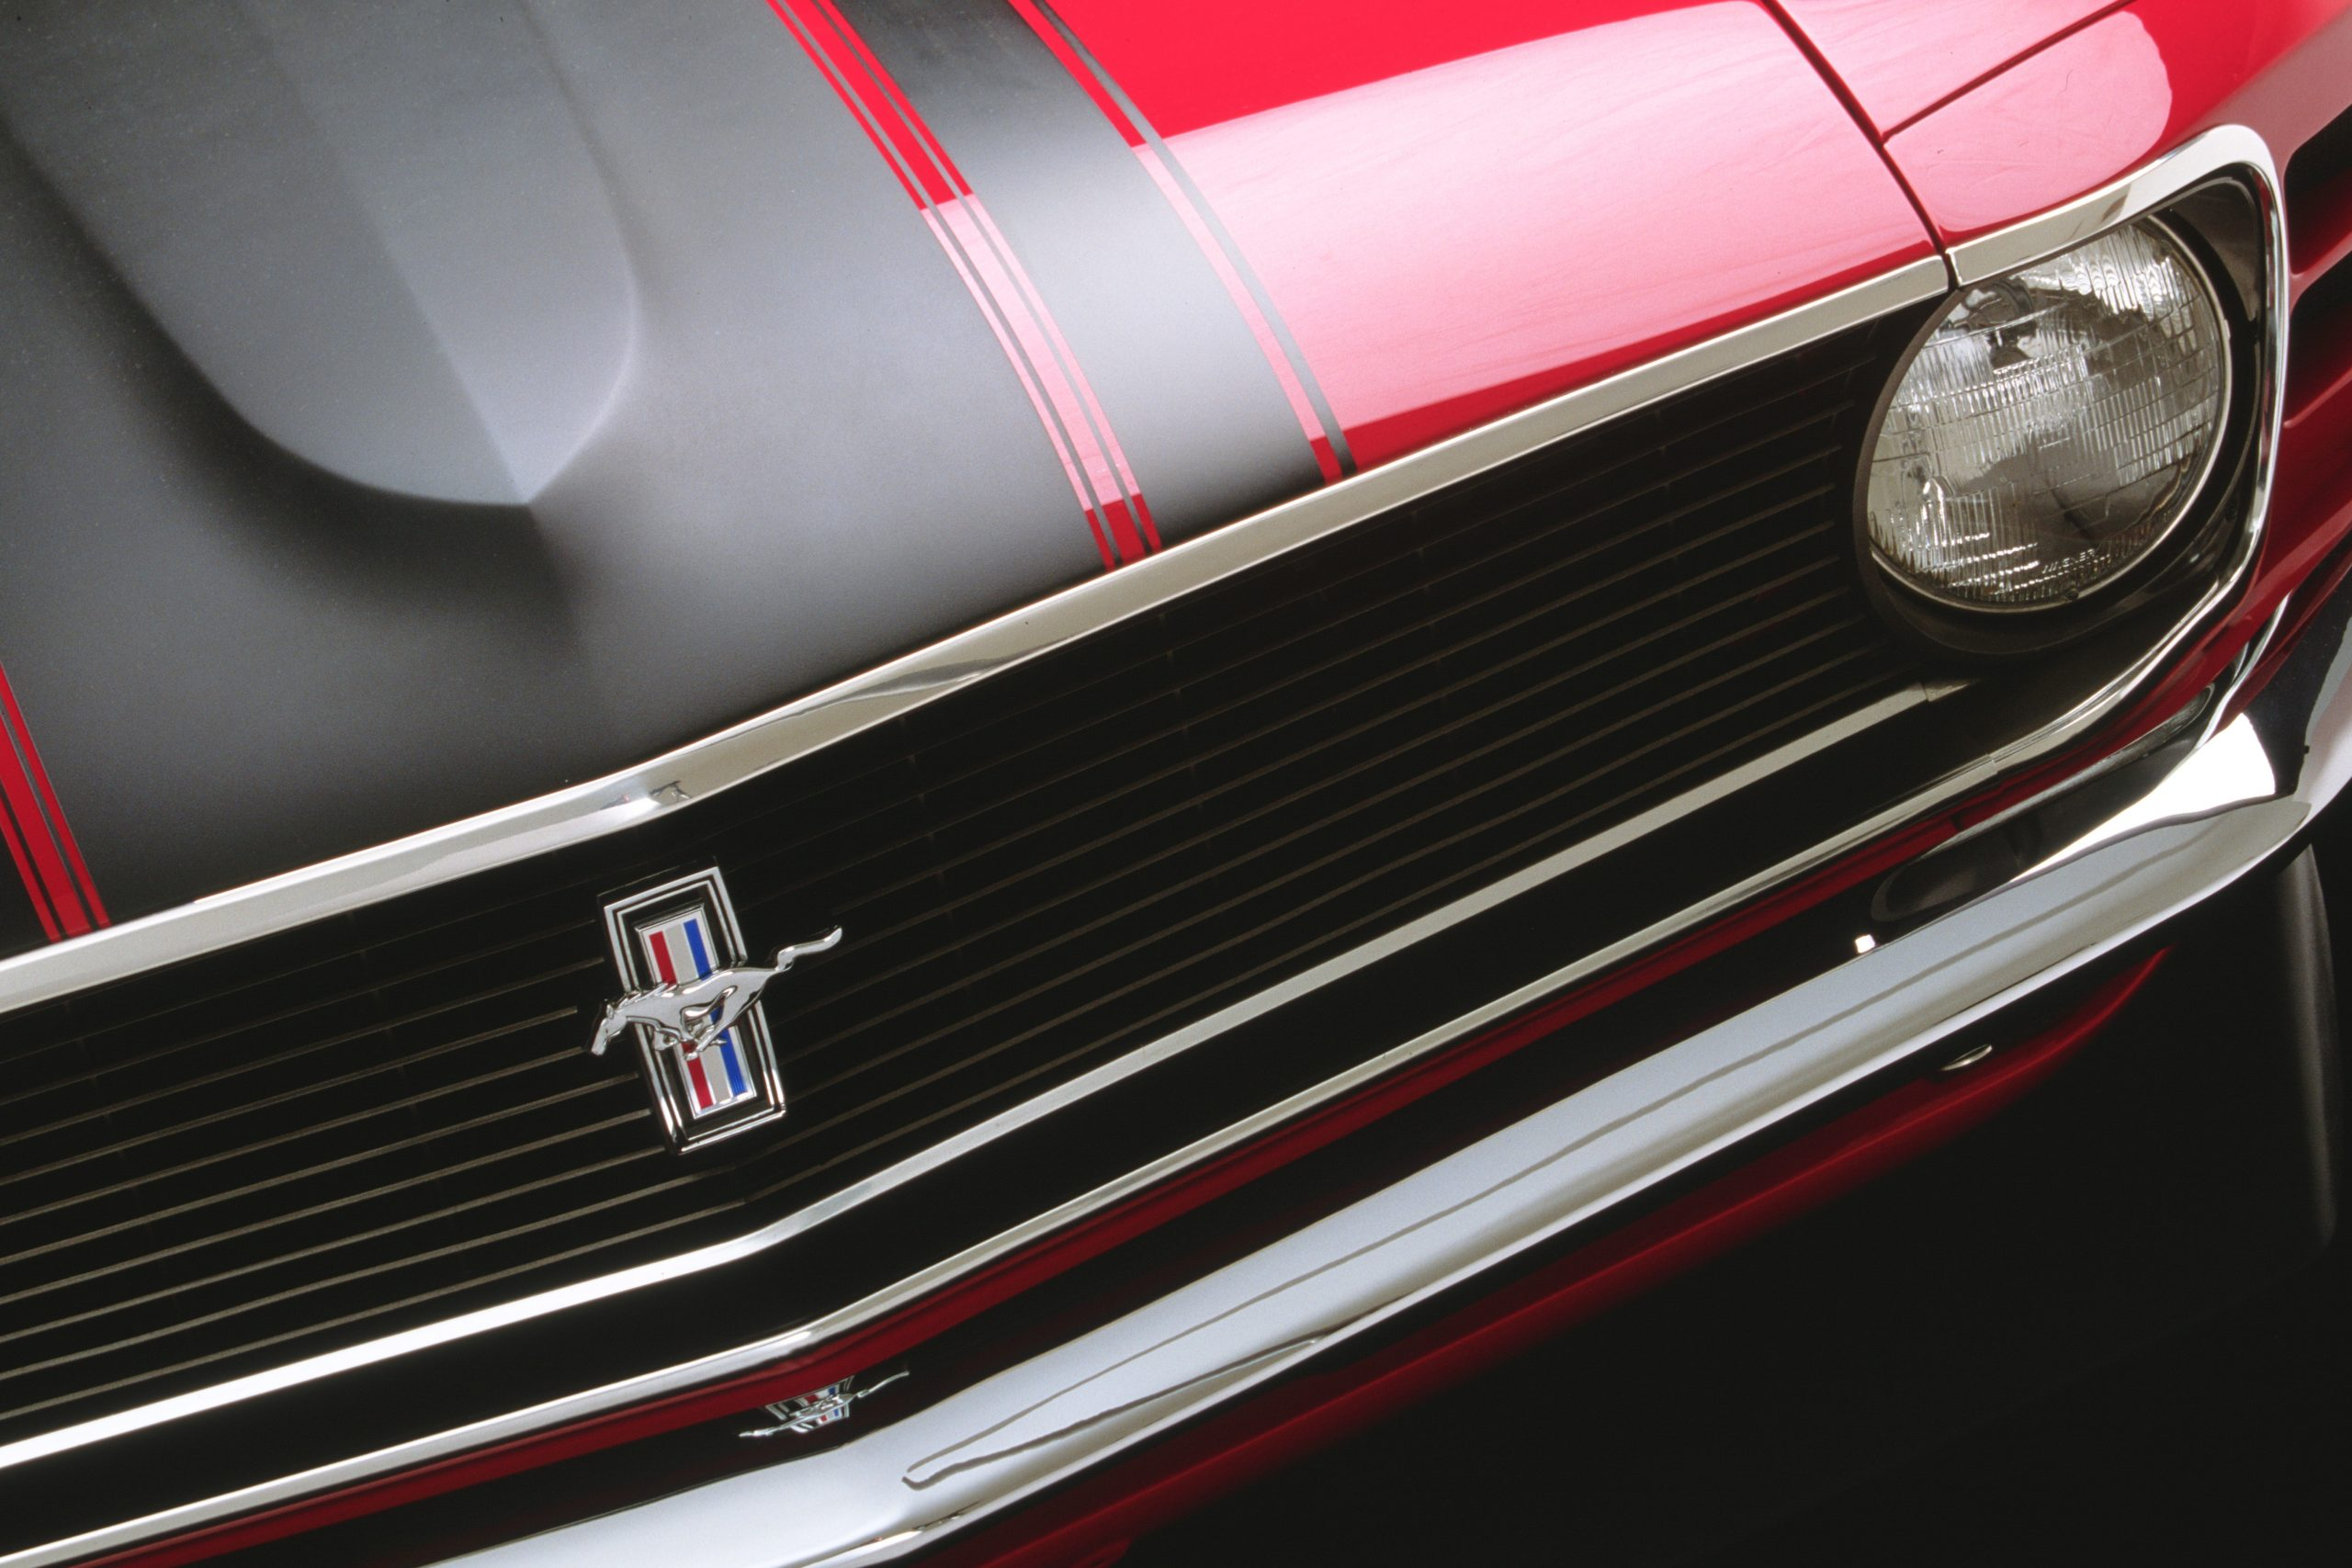 1970 Ford Mustang Mach 1 Fastback Grille